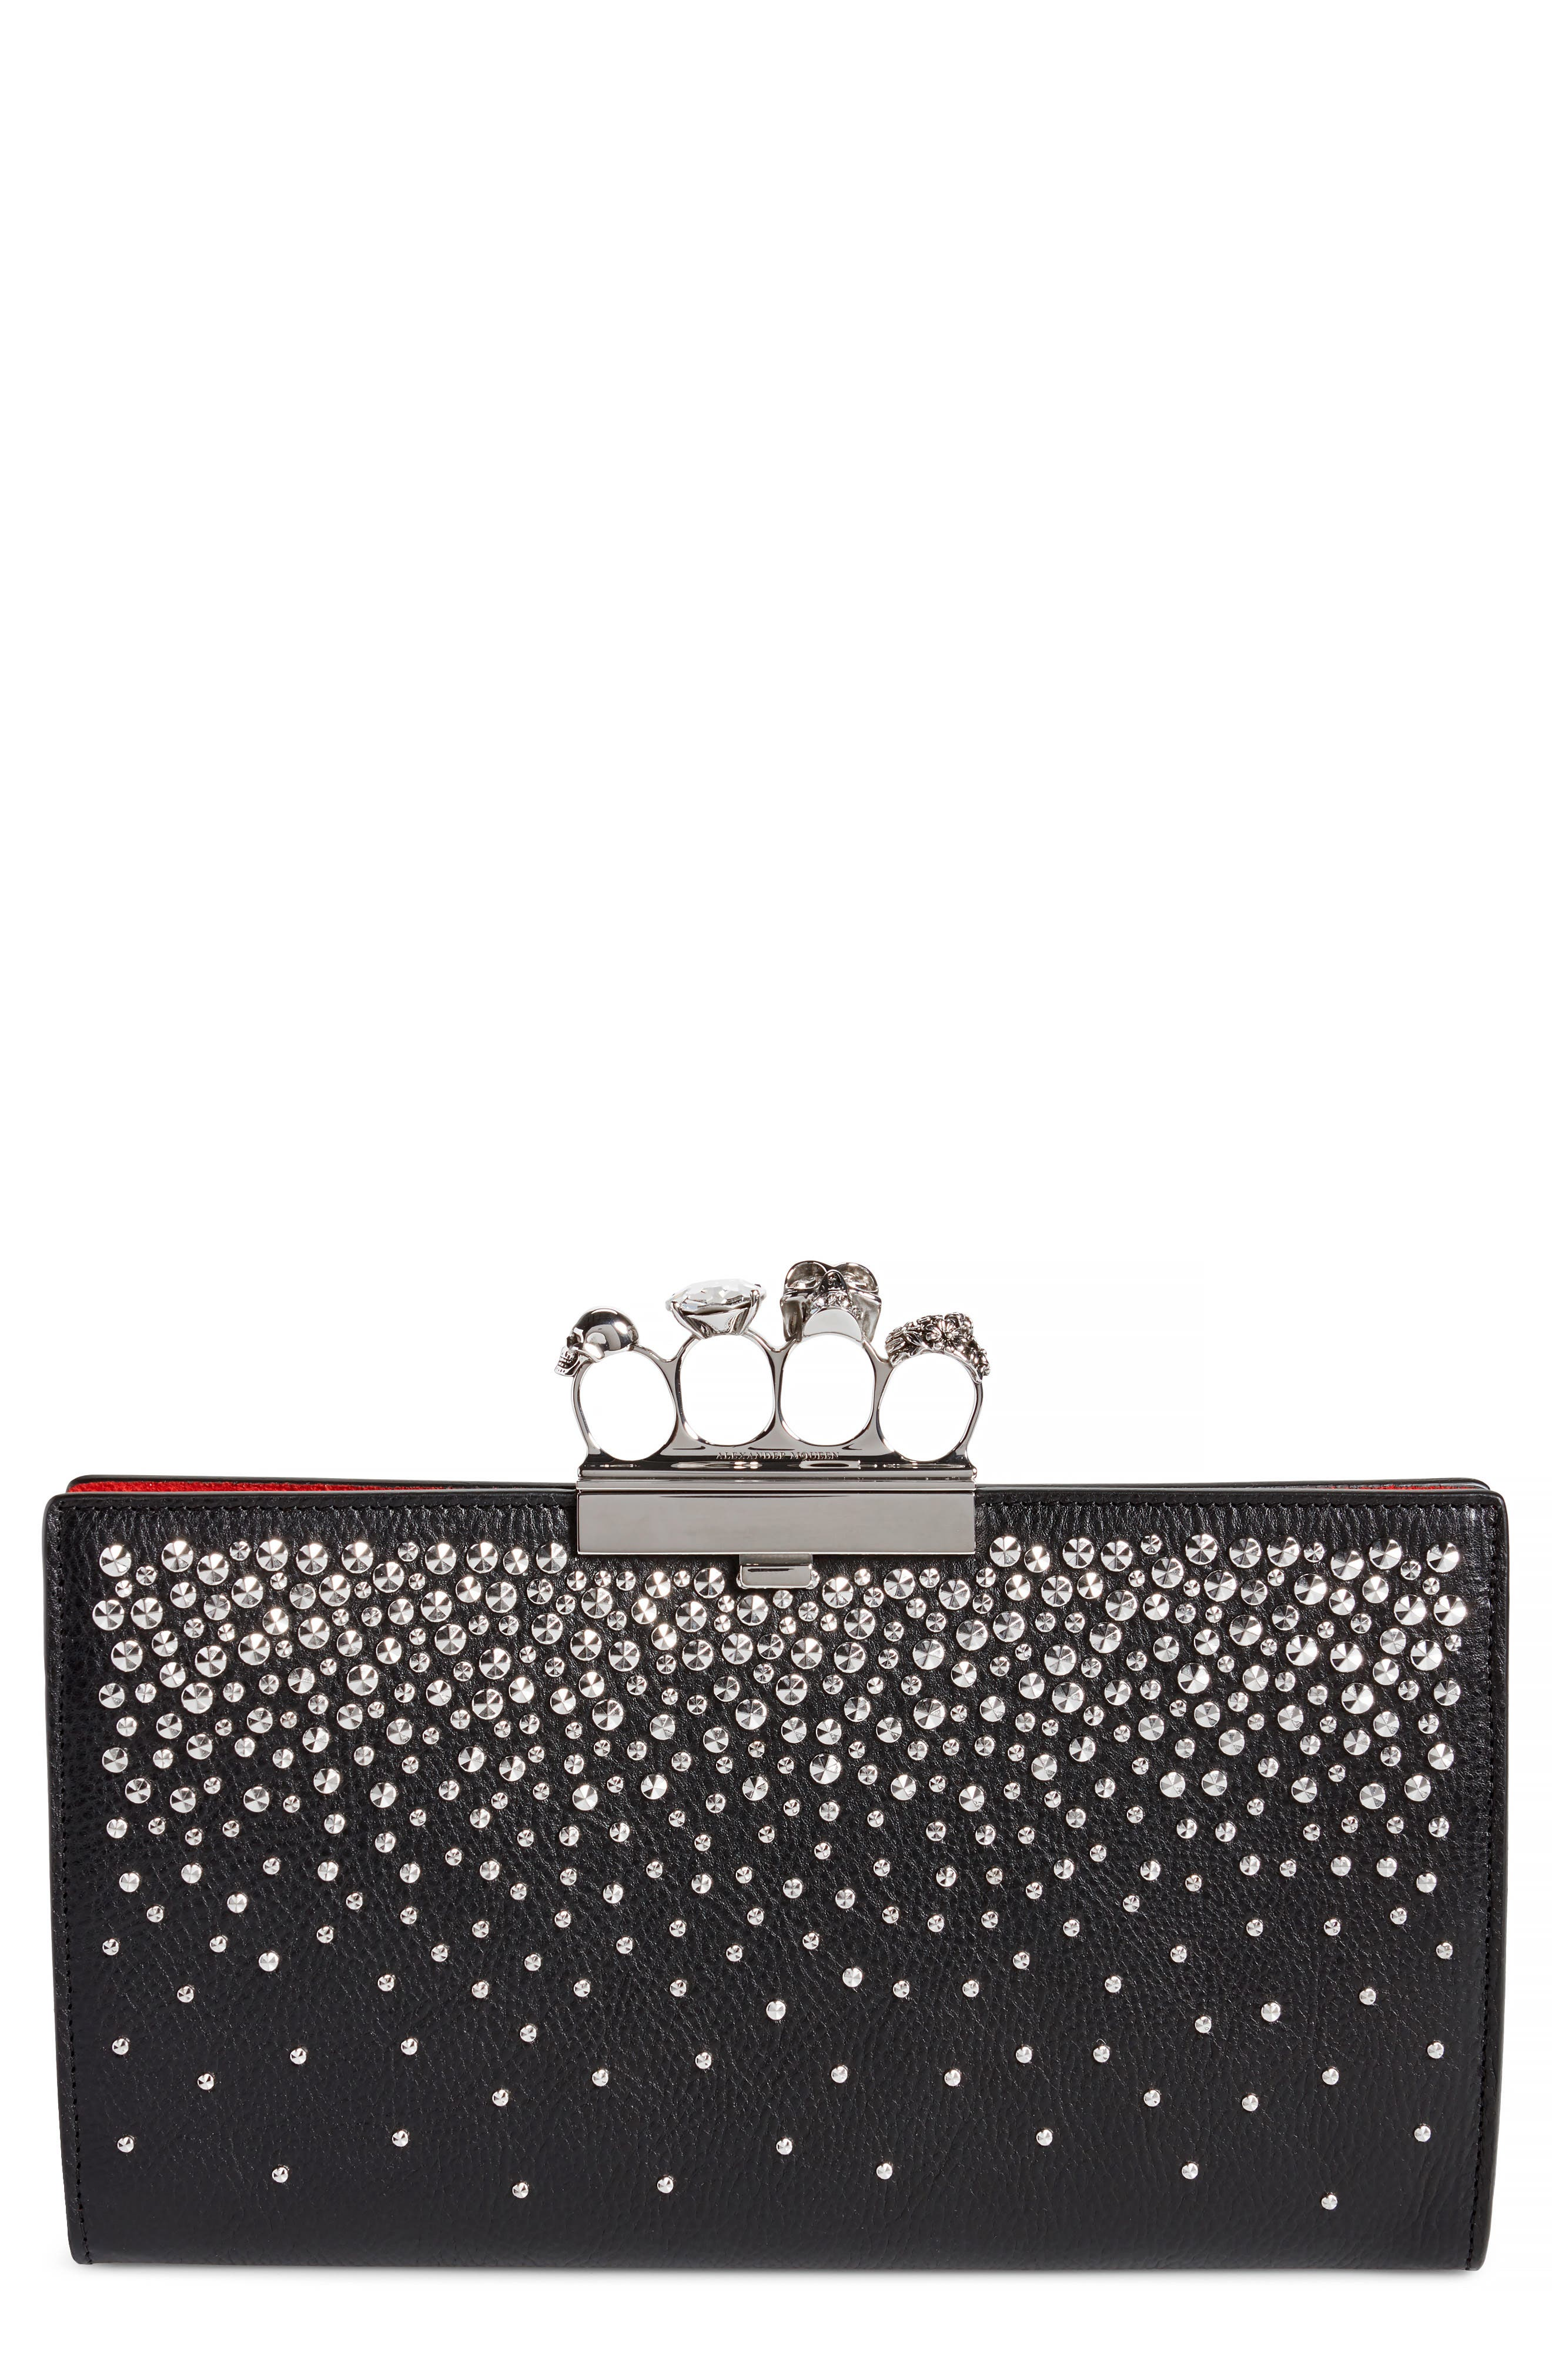 Alternate Image 1 Selected - Alexander McQueen Studded Knuckle Clasp Leather Clutch